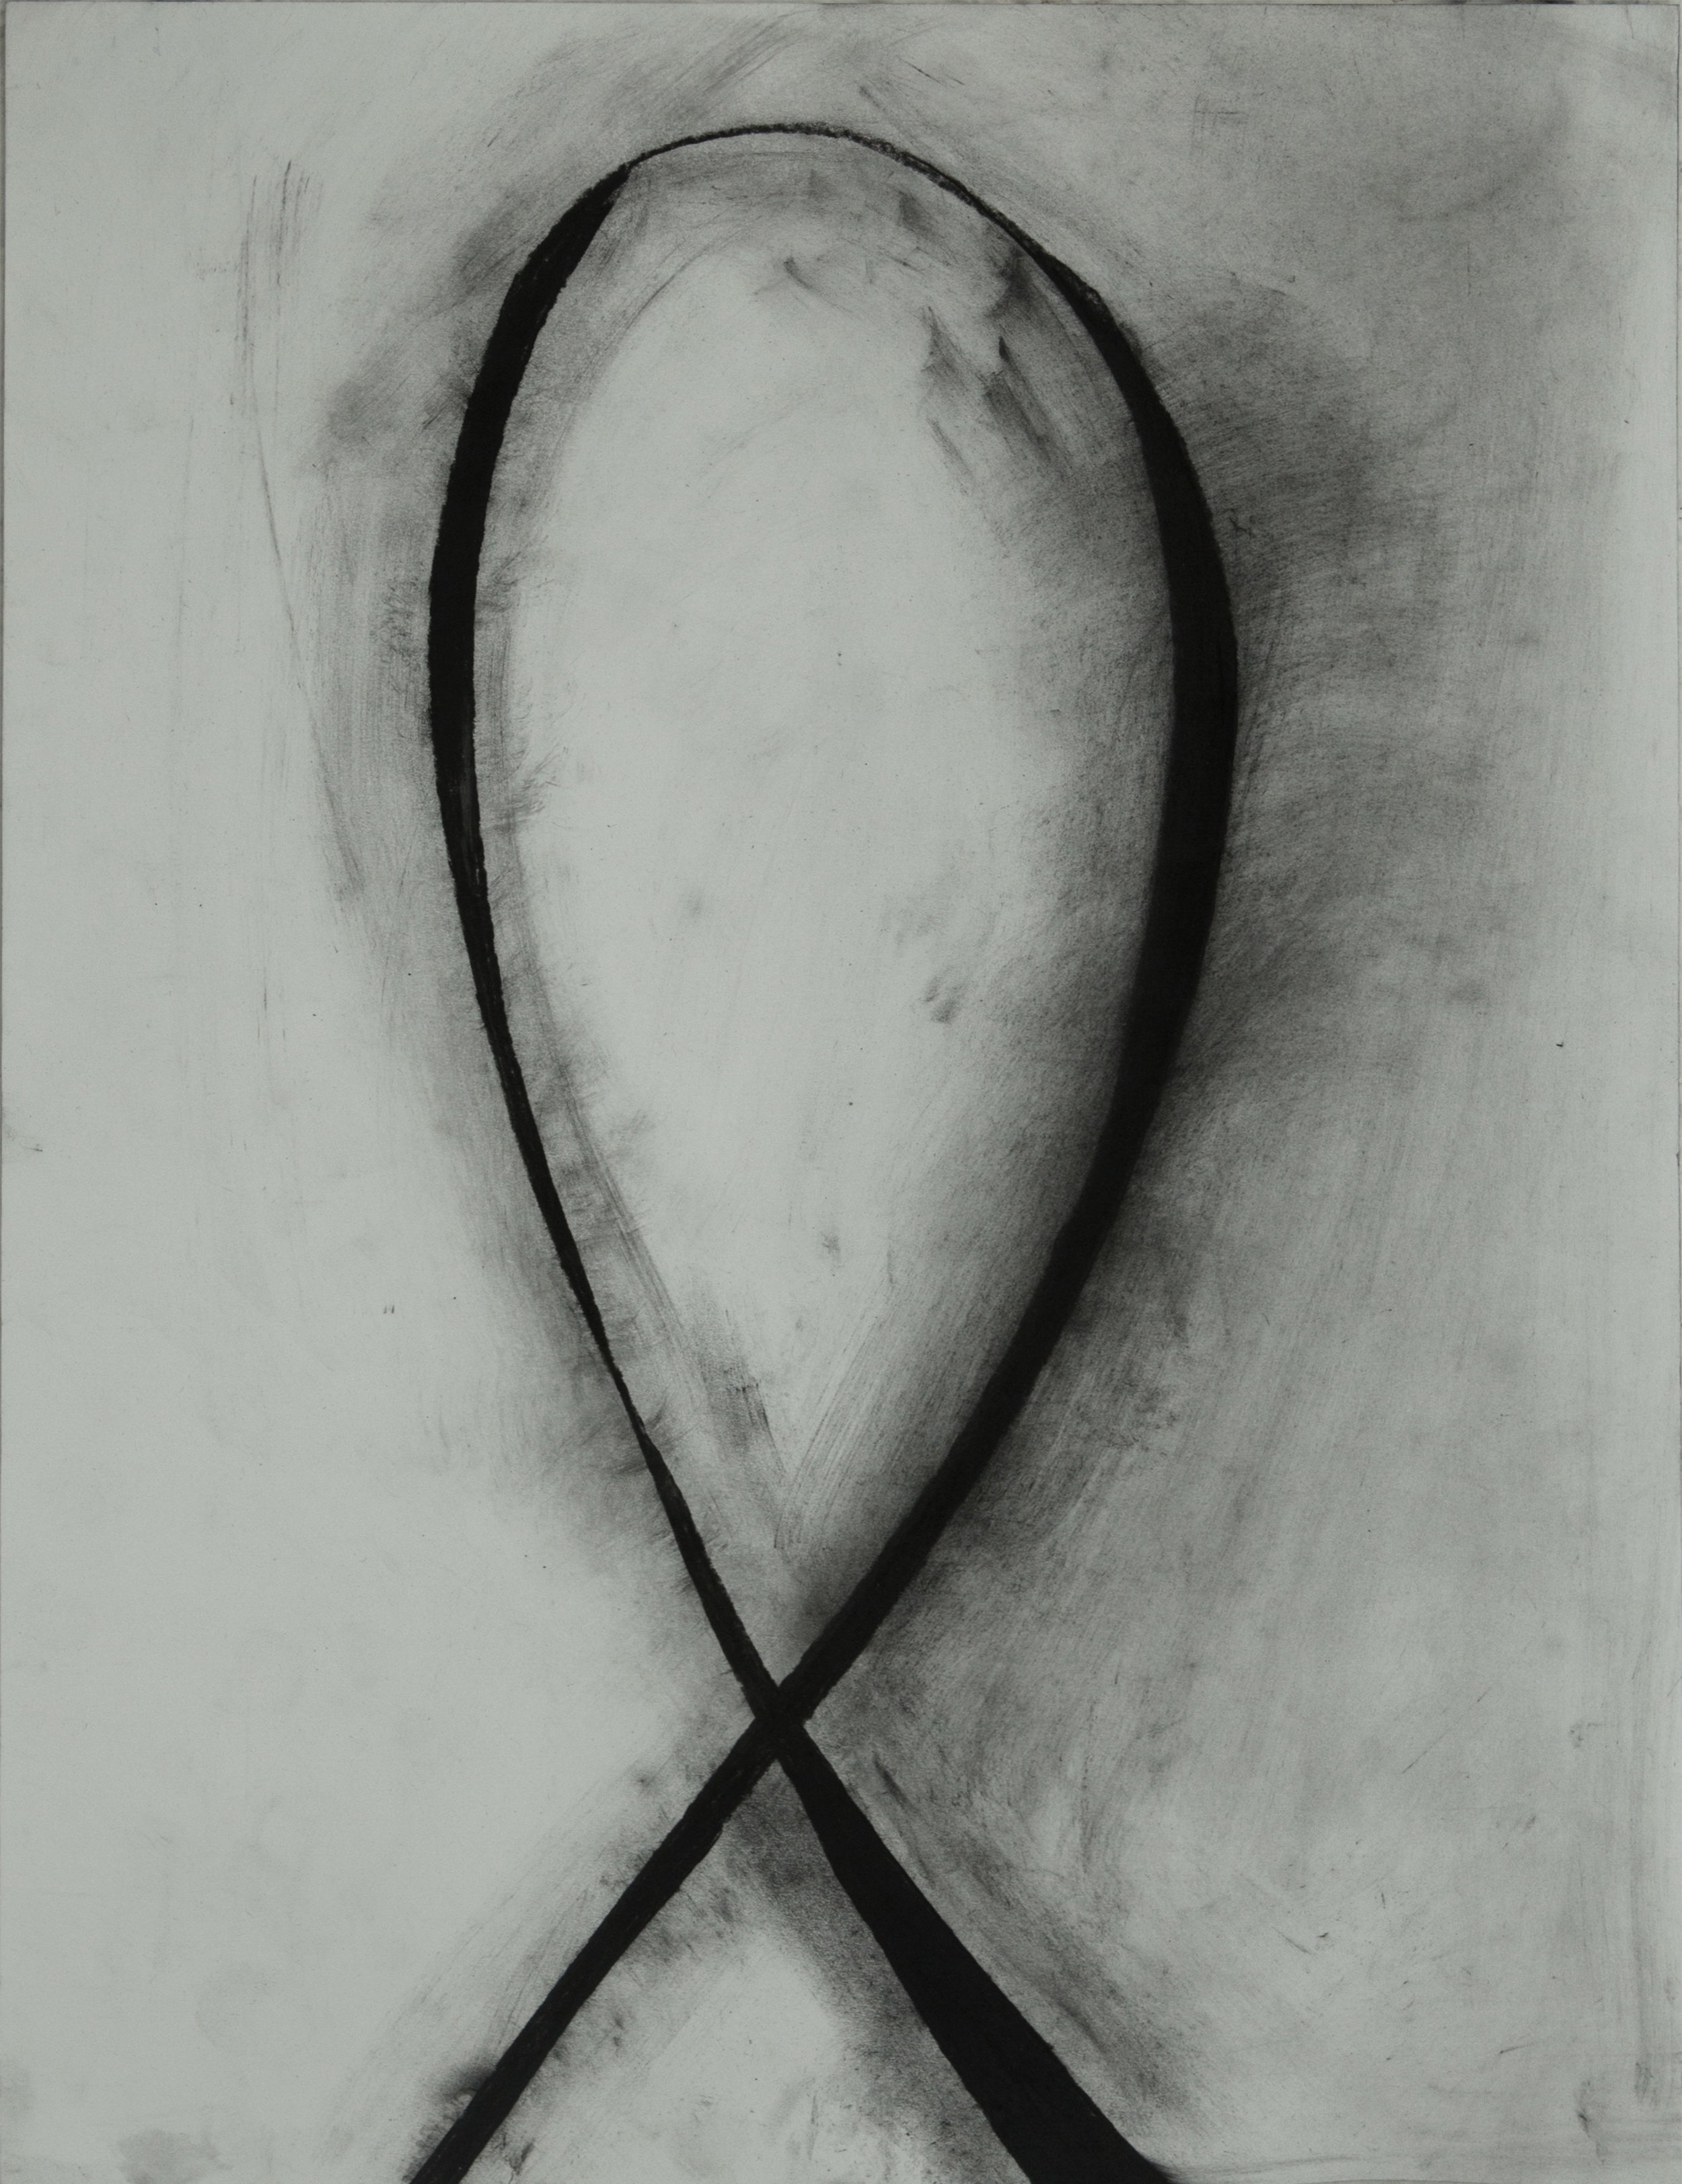 Study of Love Me,  2016  charcoal on paper  21.25 x 16 inches